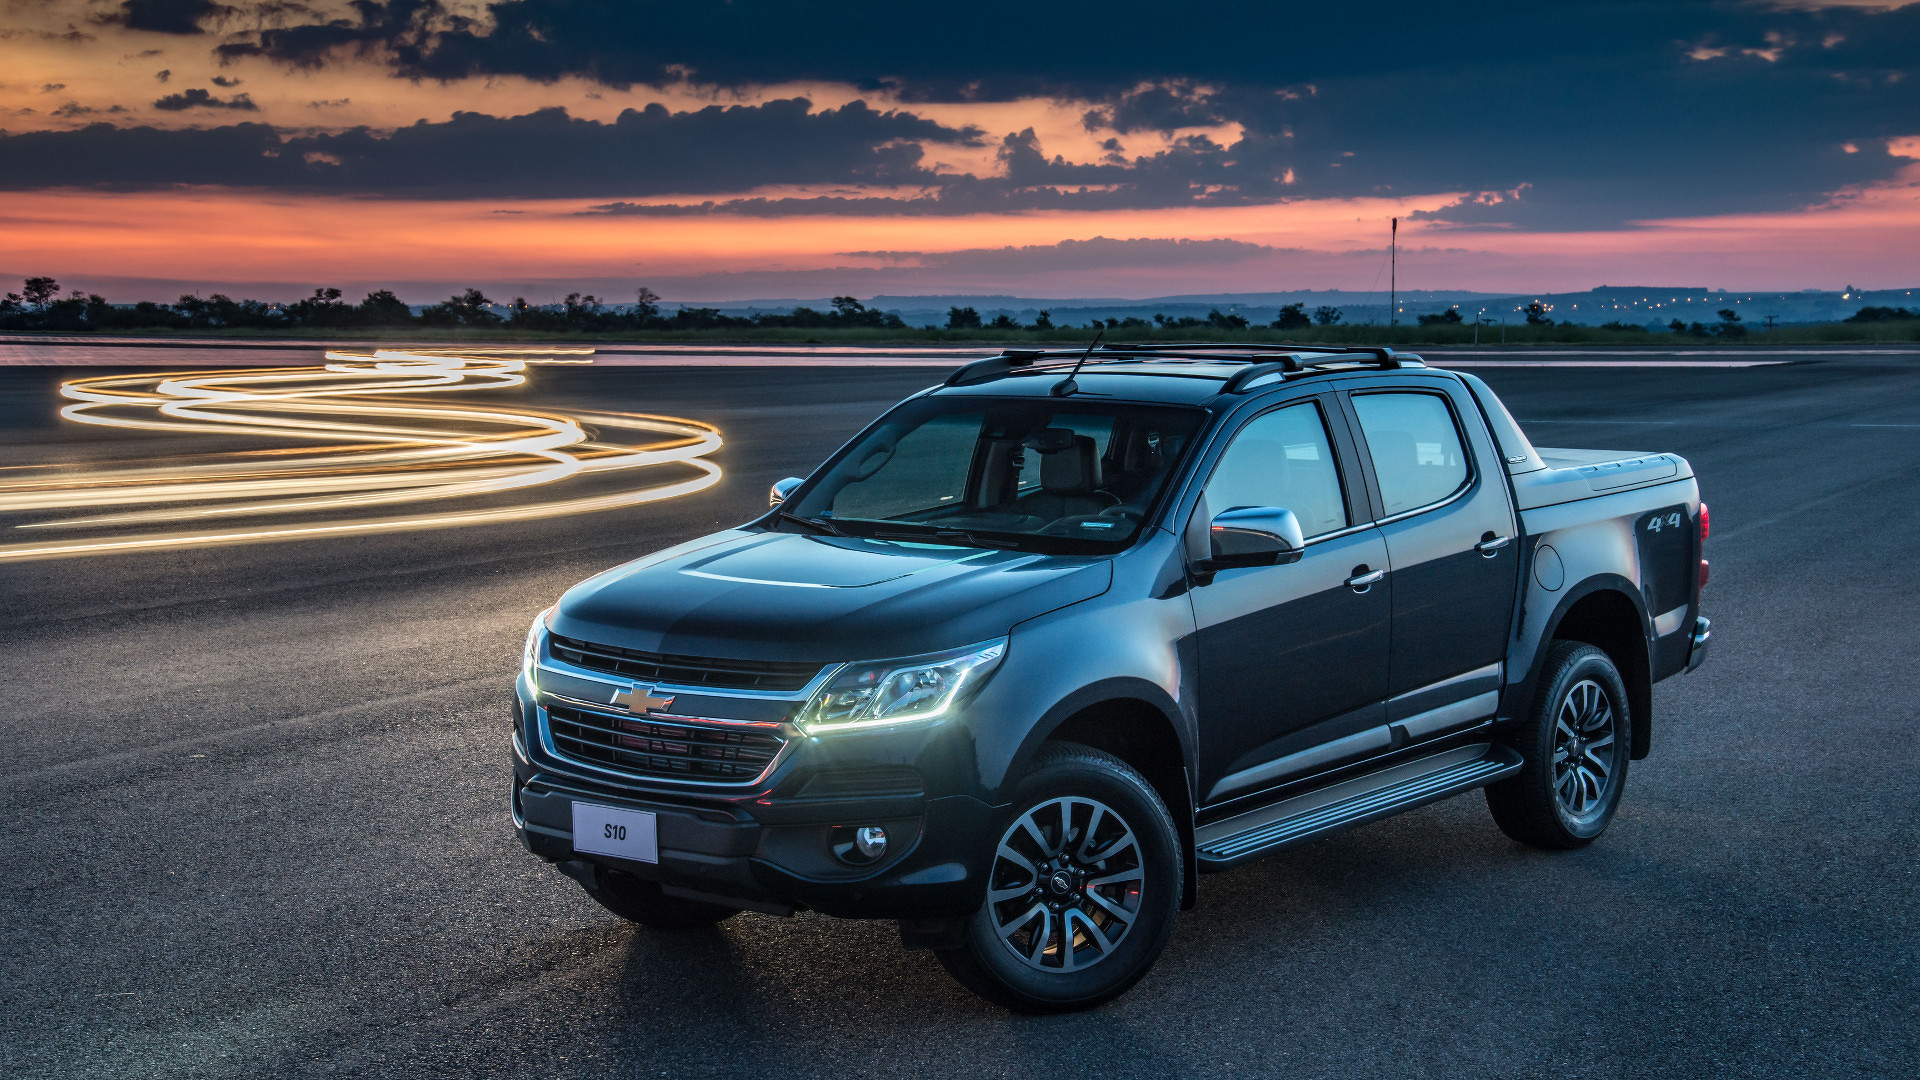 2017 chevy colorado puts on new face for overseas. Black Bedroom Furniture Sets. Home Design Ideas